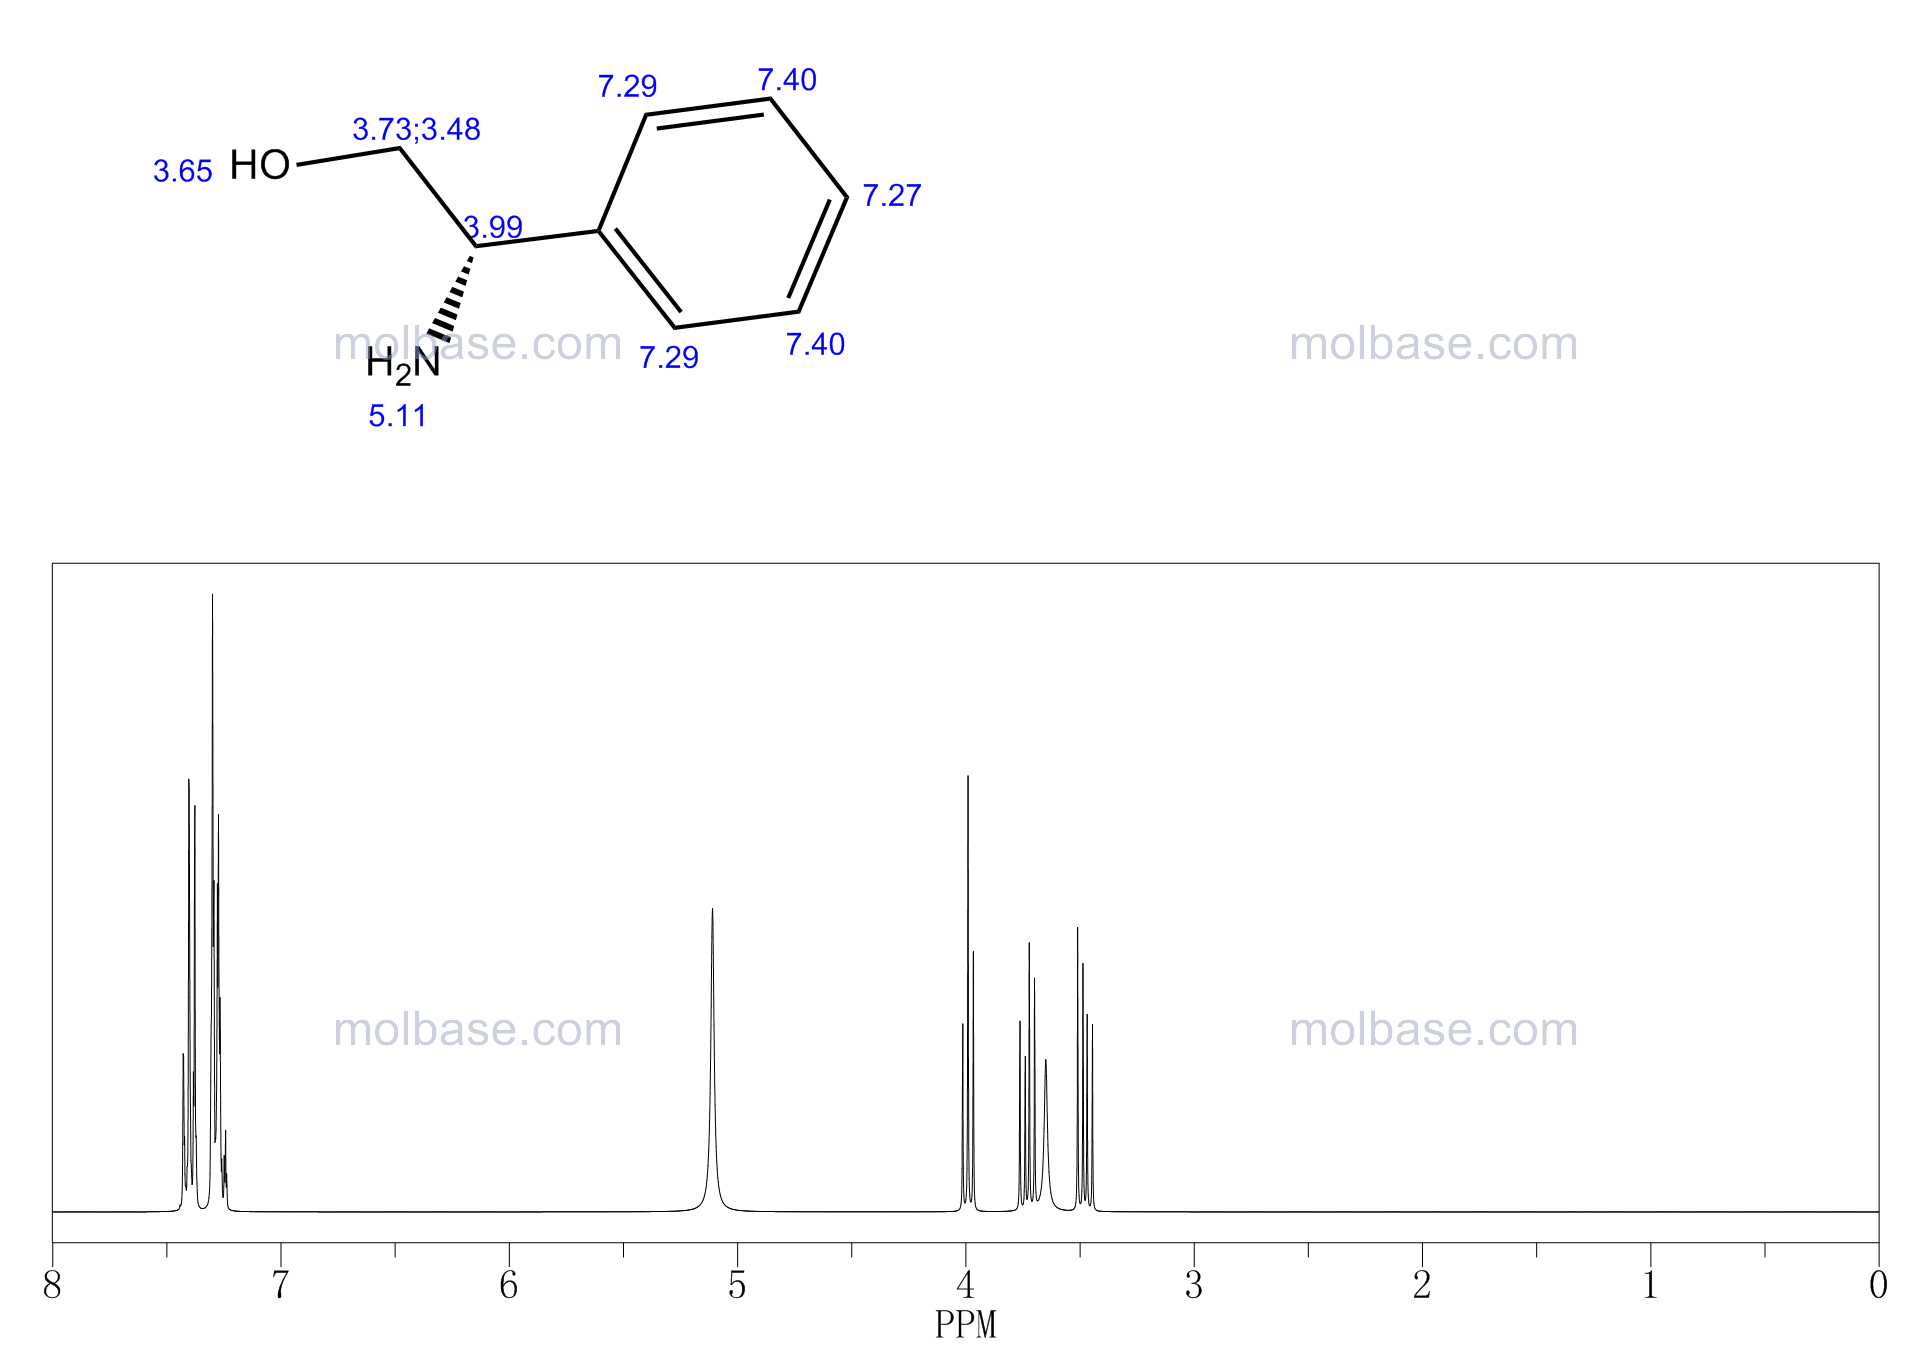 (R)-(-)-2-Phenylglycinol NMR spectra analysis, Chemical CAS NO. 56613-80-0 NMR spectral analysis, (R)-(-)-2-Phenylglycinol C-NMR spectrum